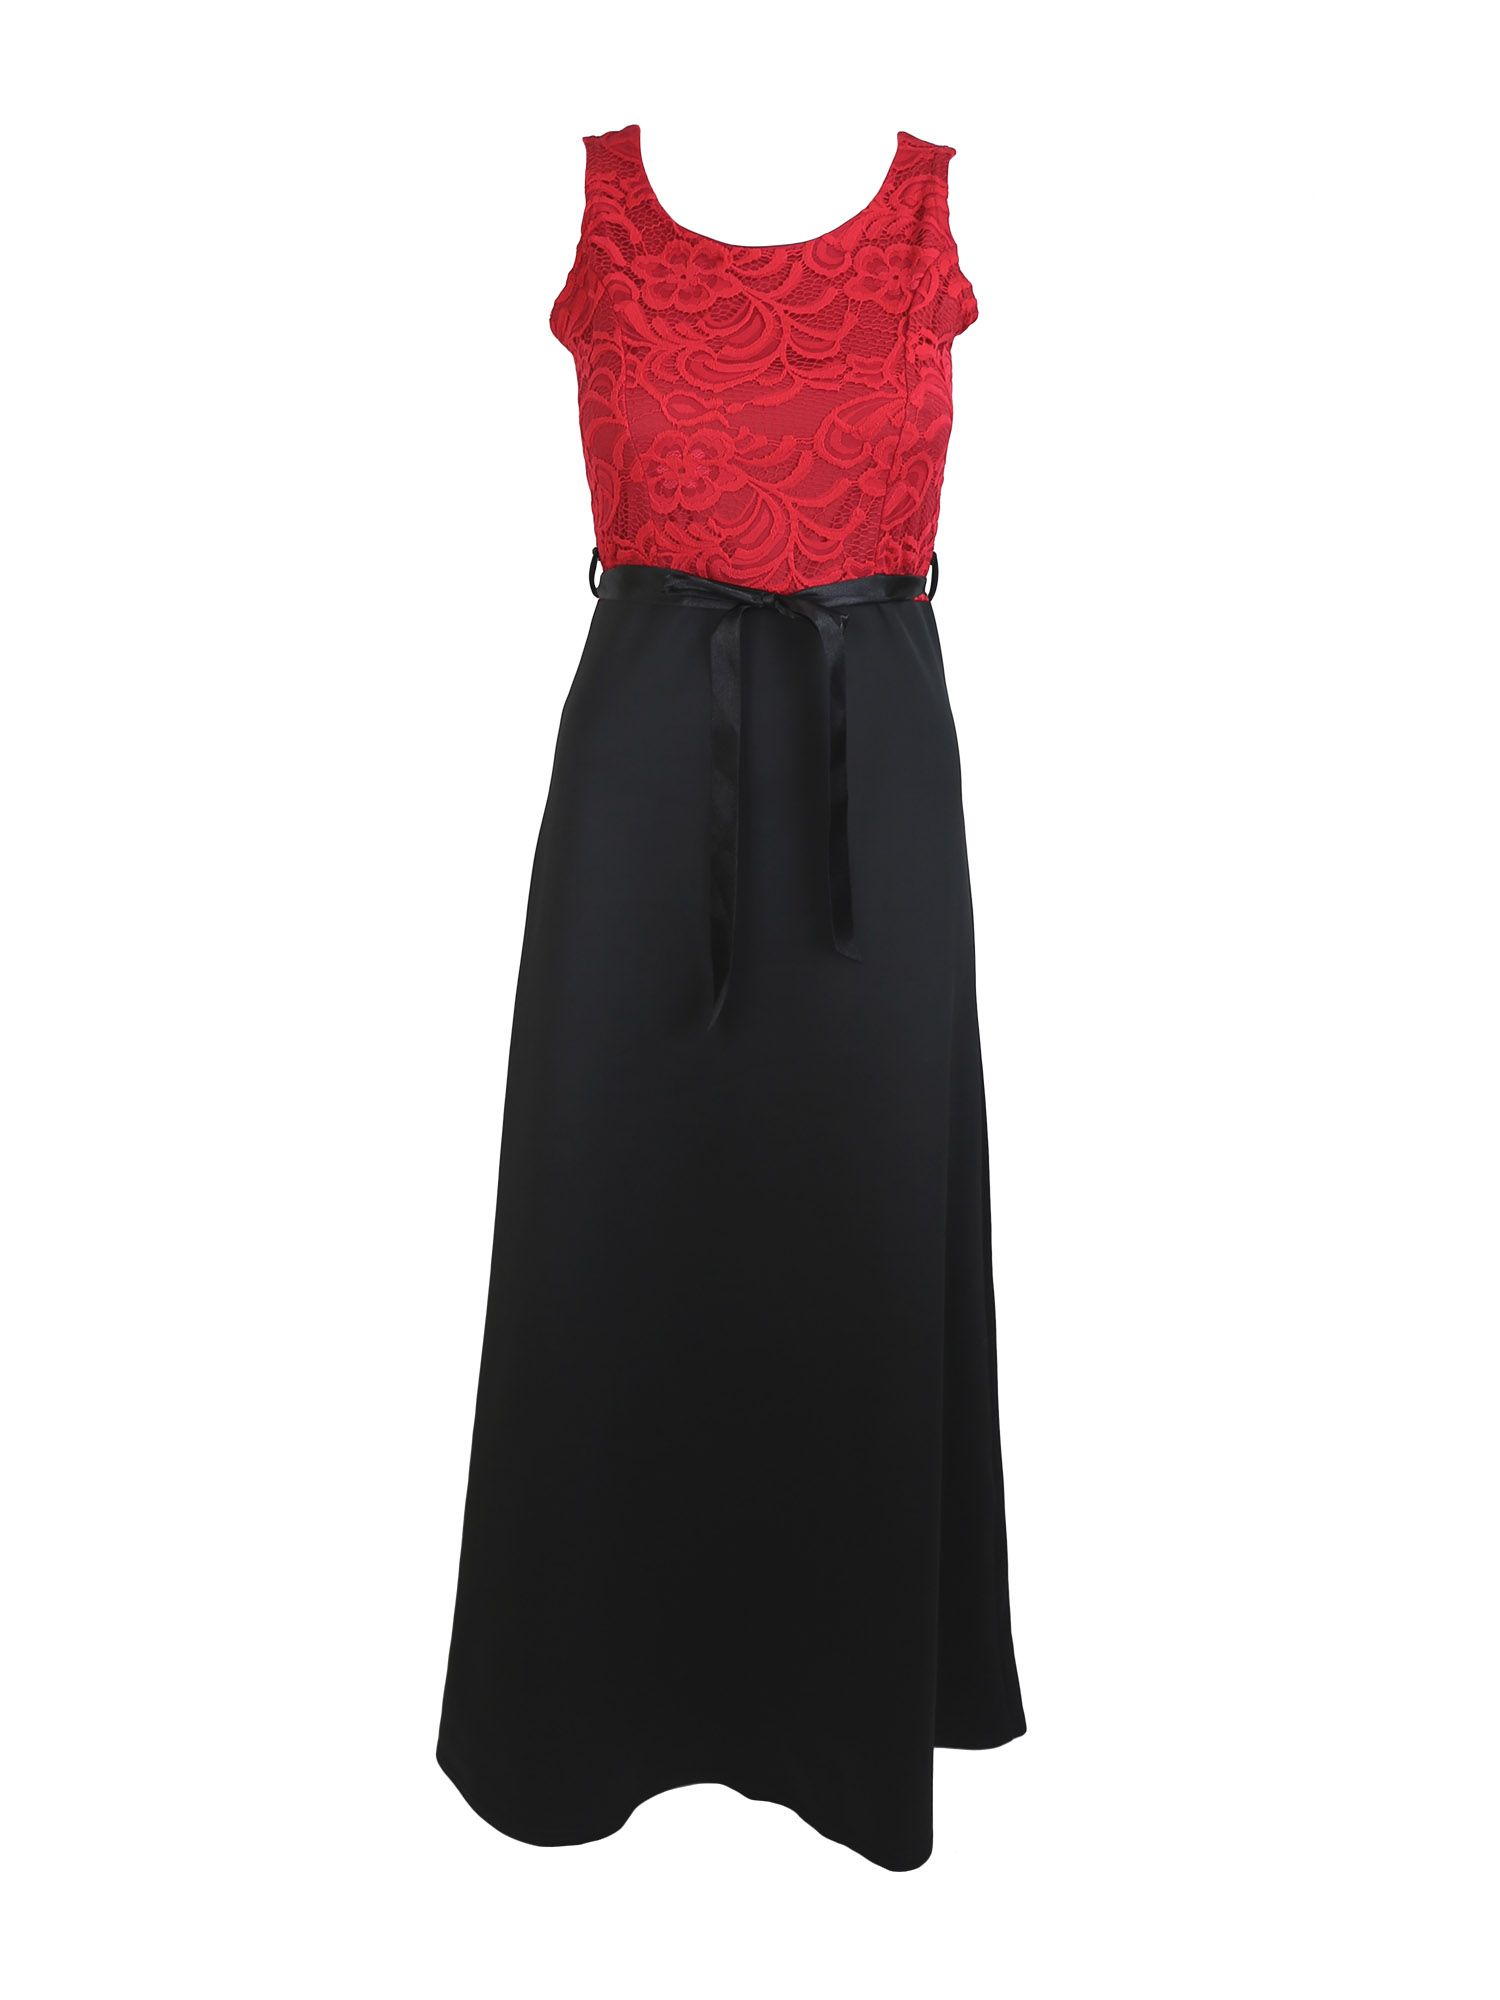 Feverfish Feverfish Lace Contrast Maxi Dress, Red